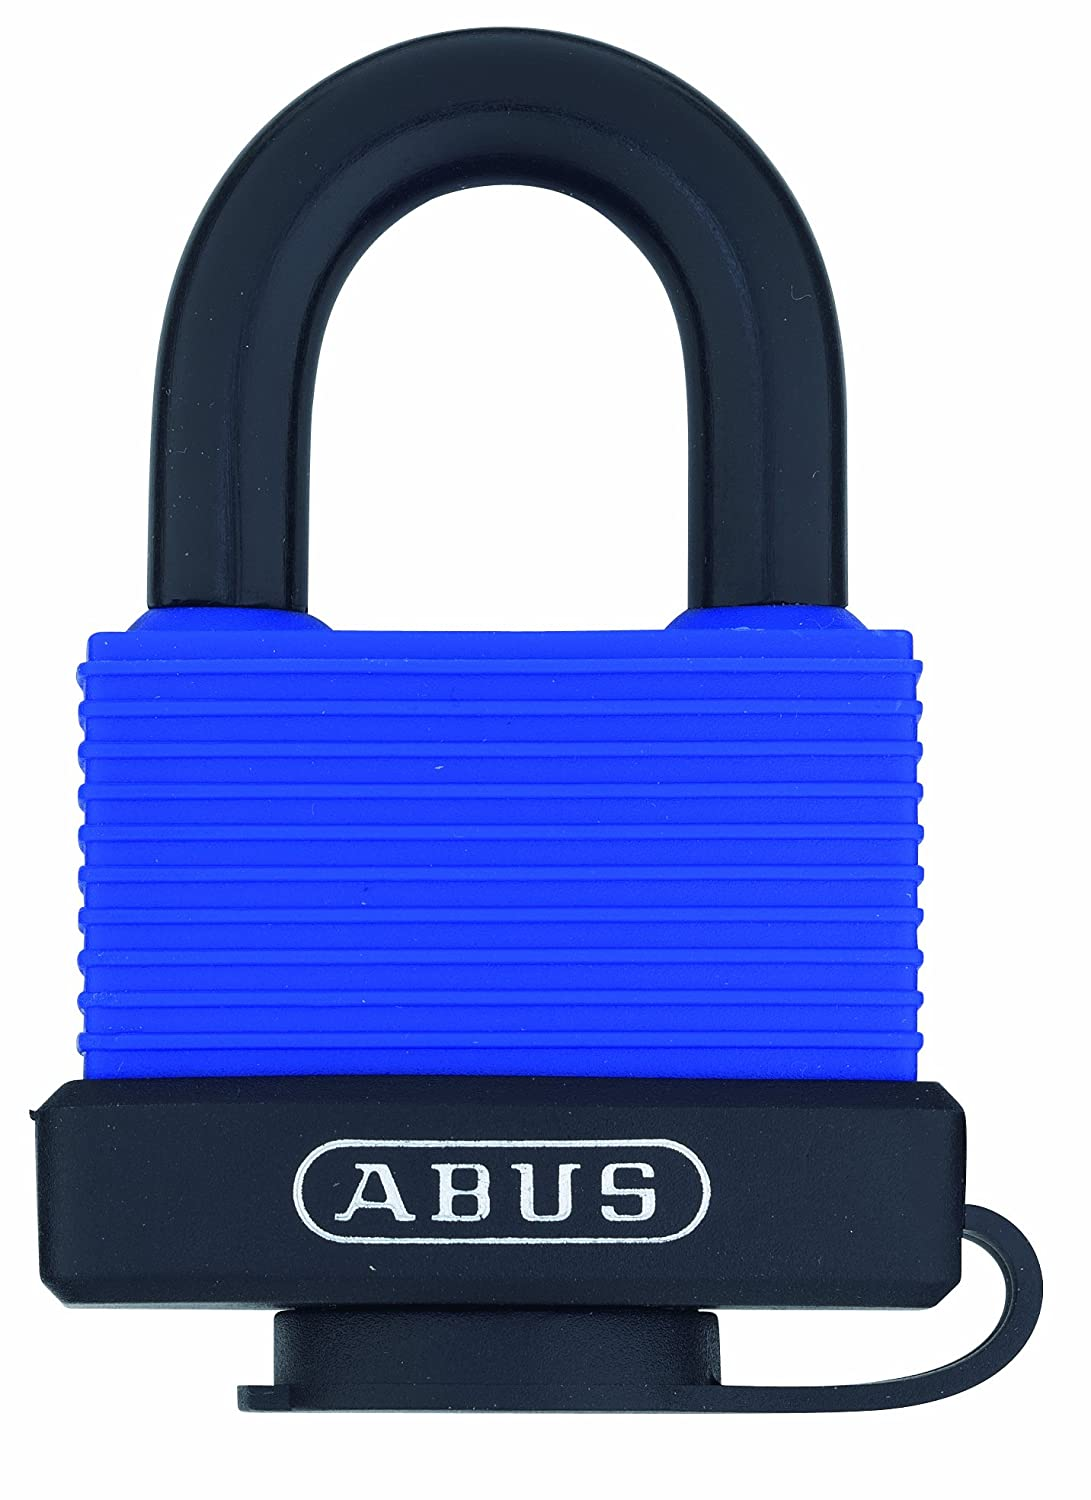 ABUS 70IB/45 KD Blue All Weather Solid Brass Body with Weather Cover and Stainessless Steel Shackle Keyed Different Padlock